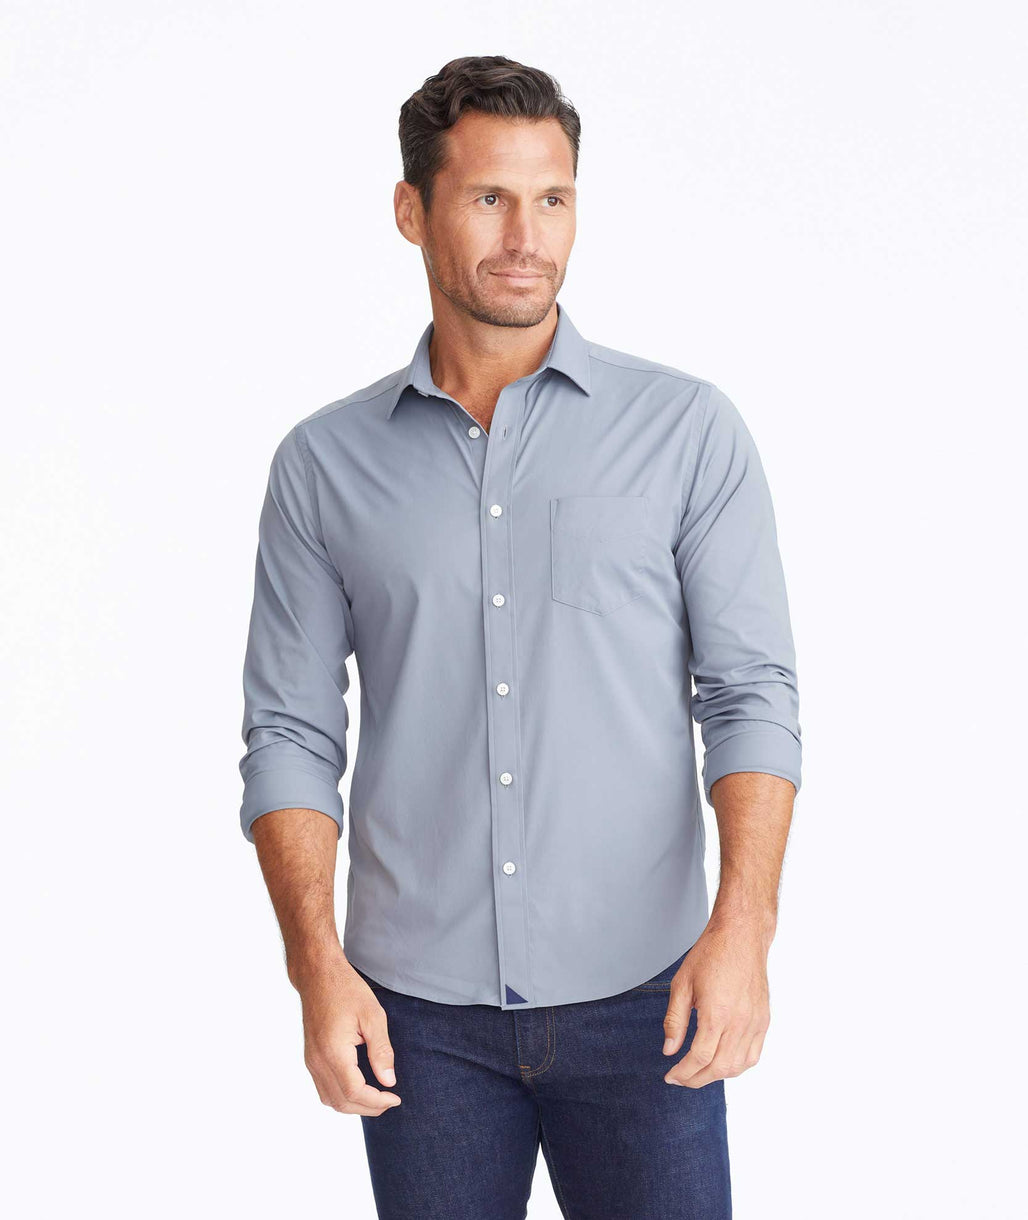 Model wearing a Mid Grey Wrinkle-Free Performance Gironde Shirt